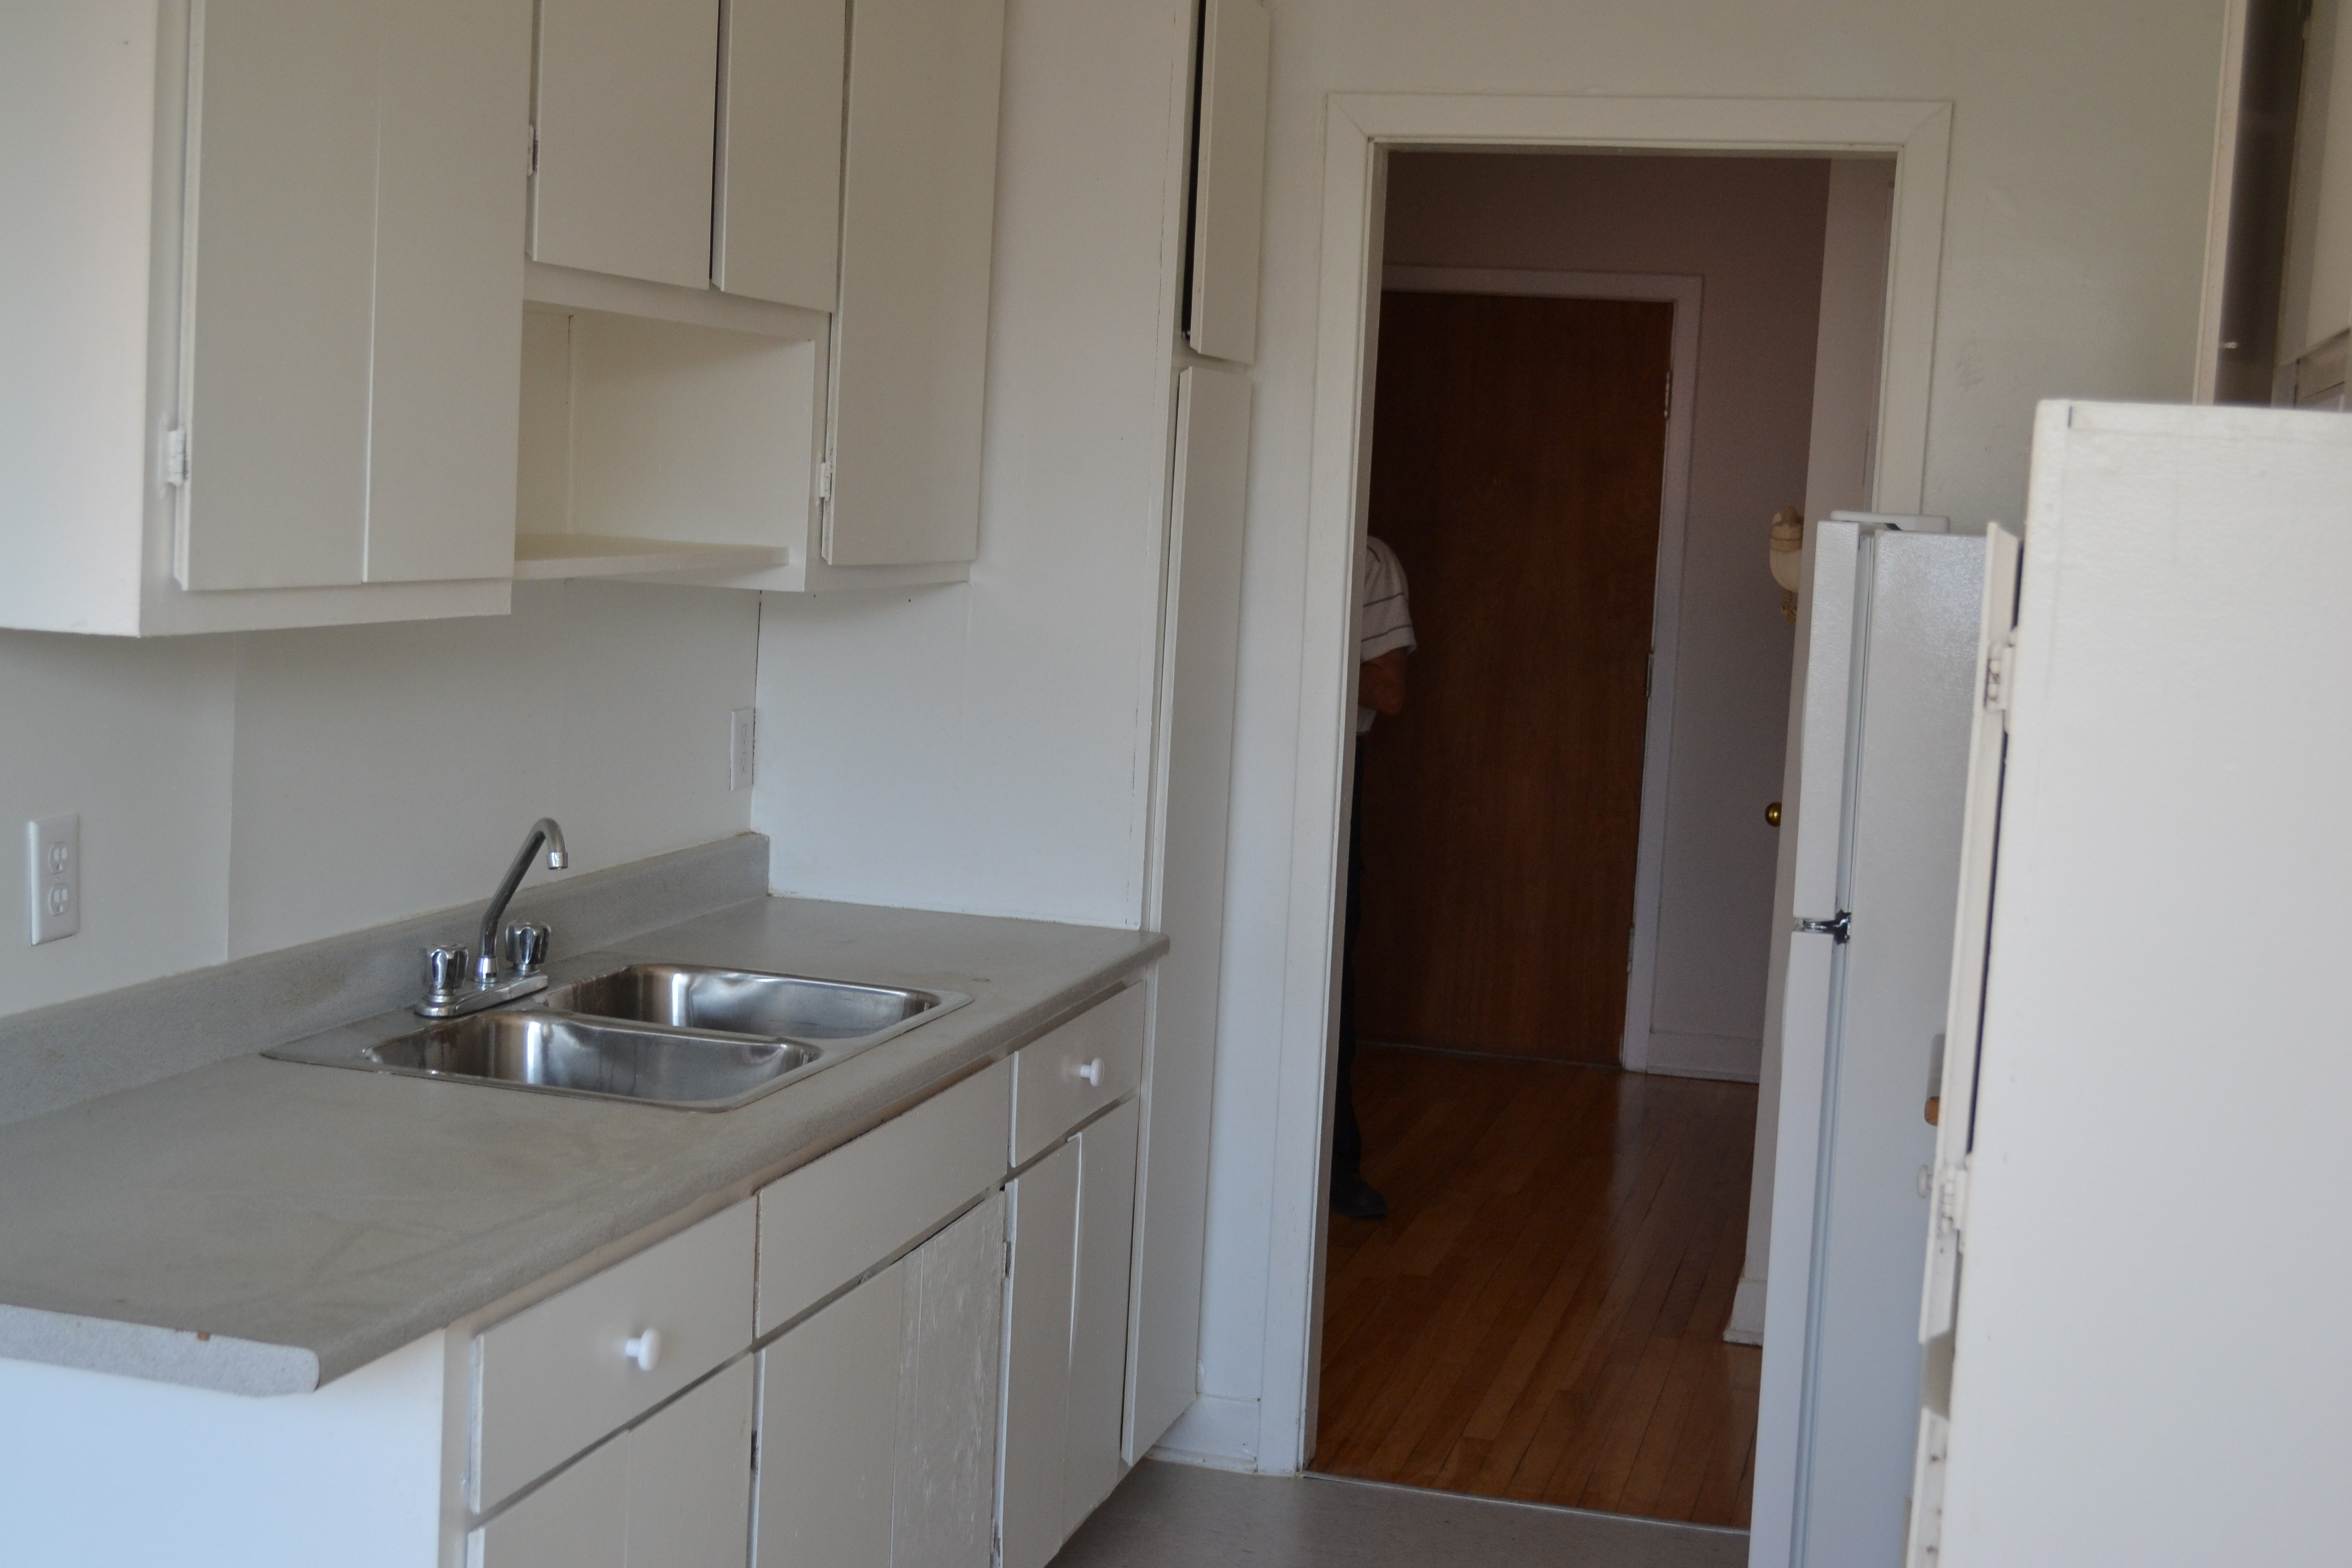 1 bedroom Apartments for rent in Cote-des-Neiges at 2615-2625 Kent - Photo 04 - RentersPages – L20719